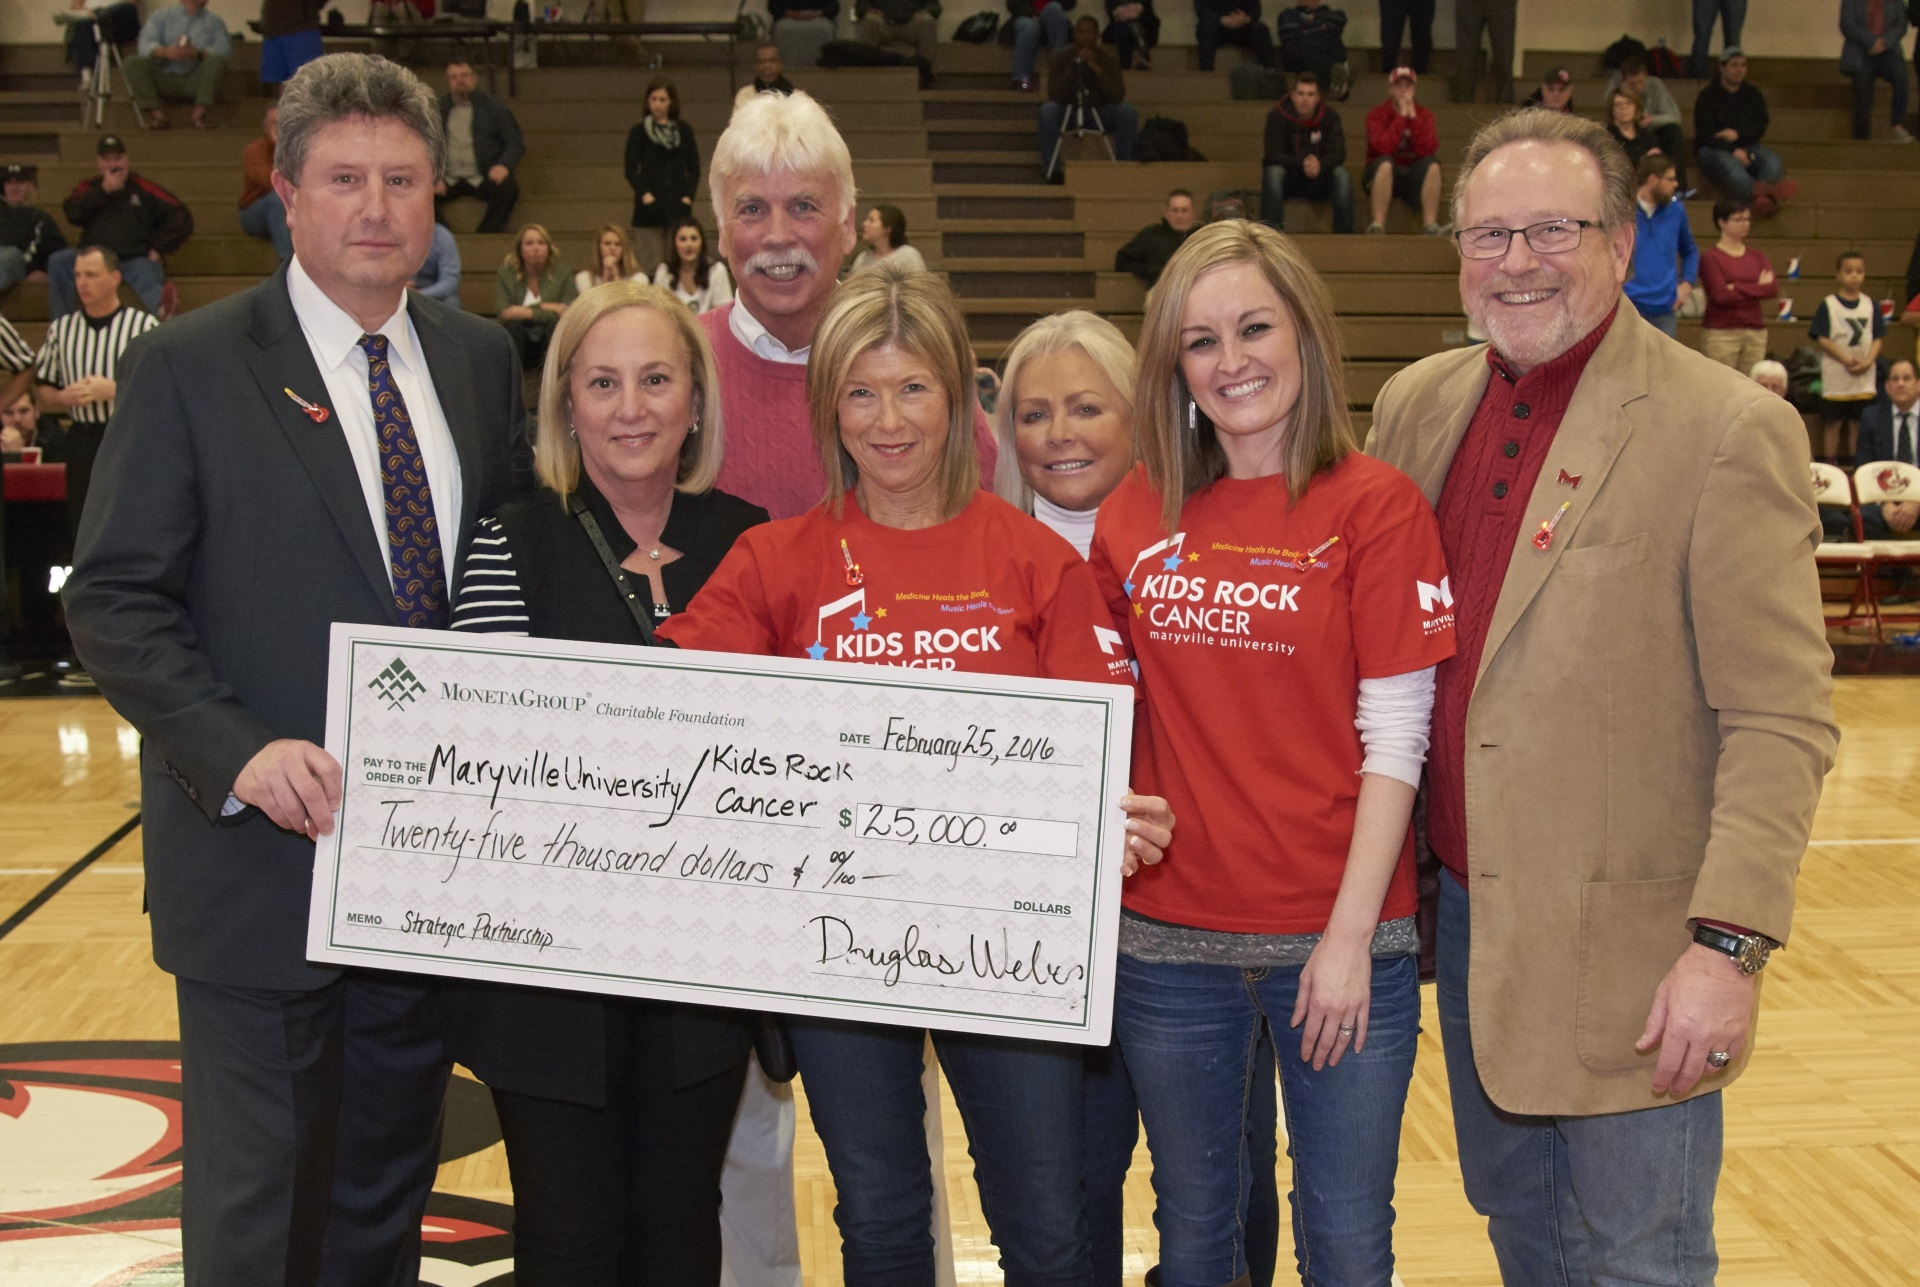 Moneta Group Charitable Foundation Grants $25,000  to Two Local Organizations, Kids Rock Cancer and Great Circle